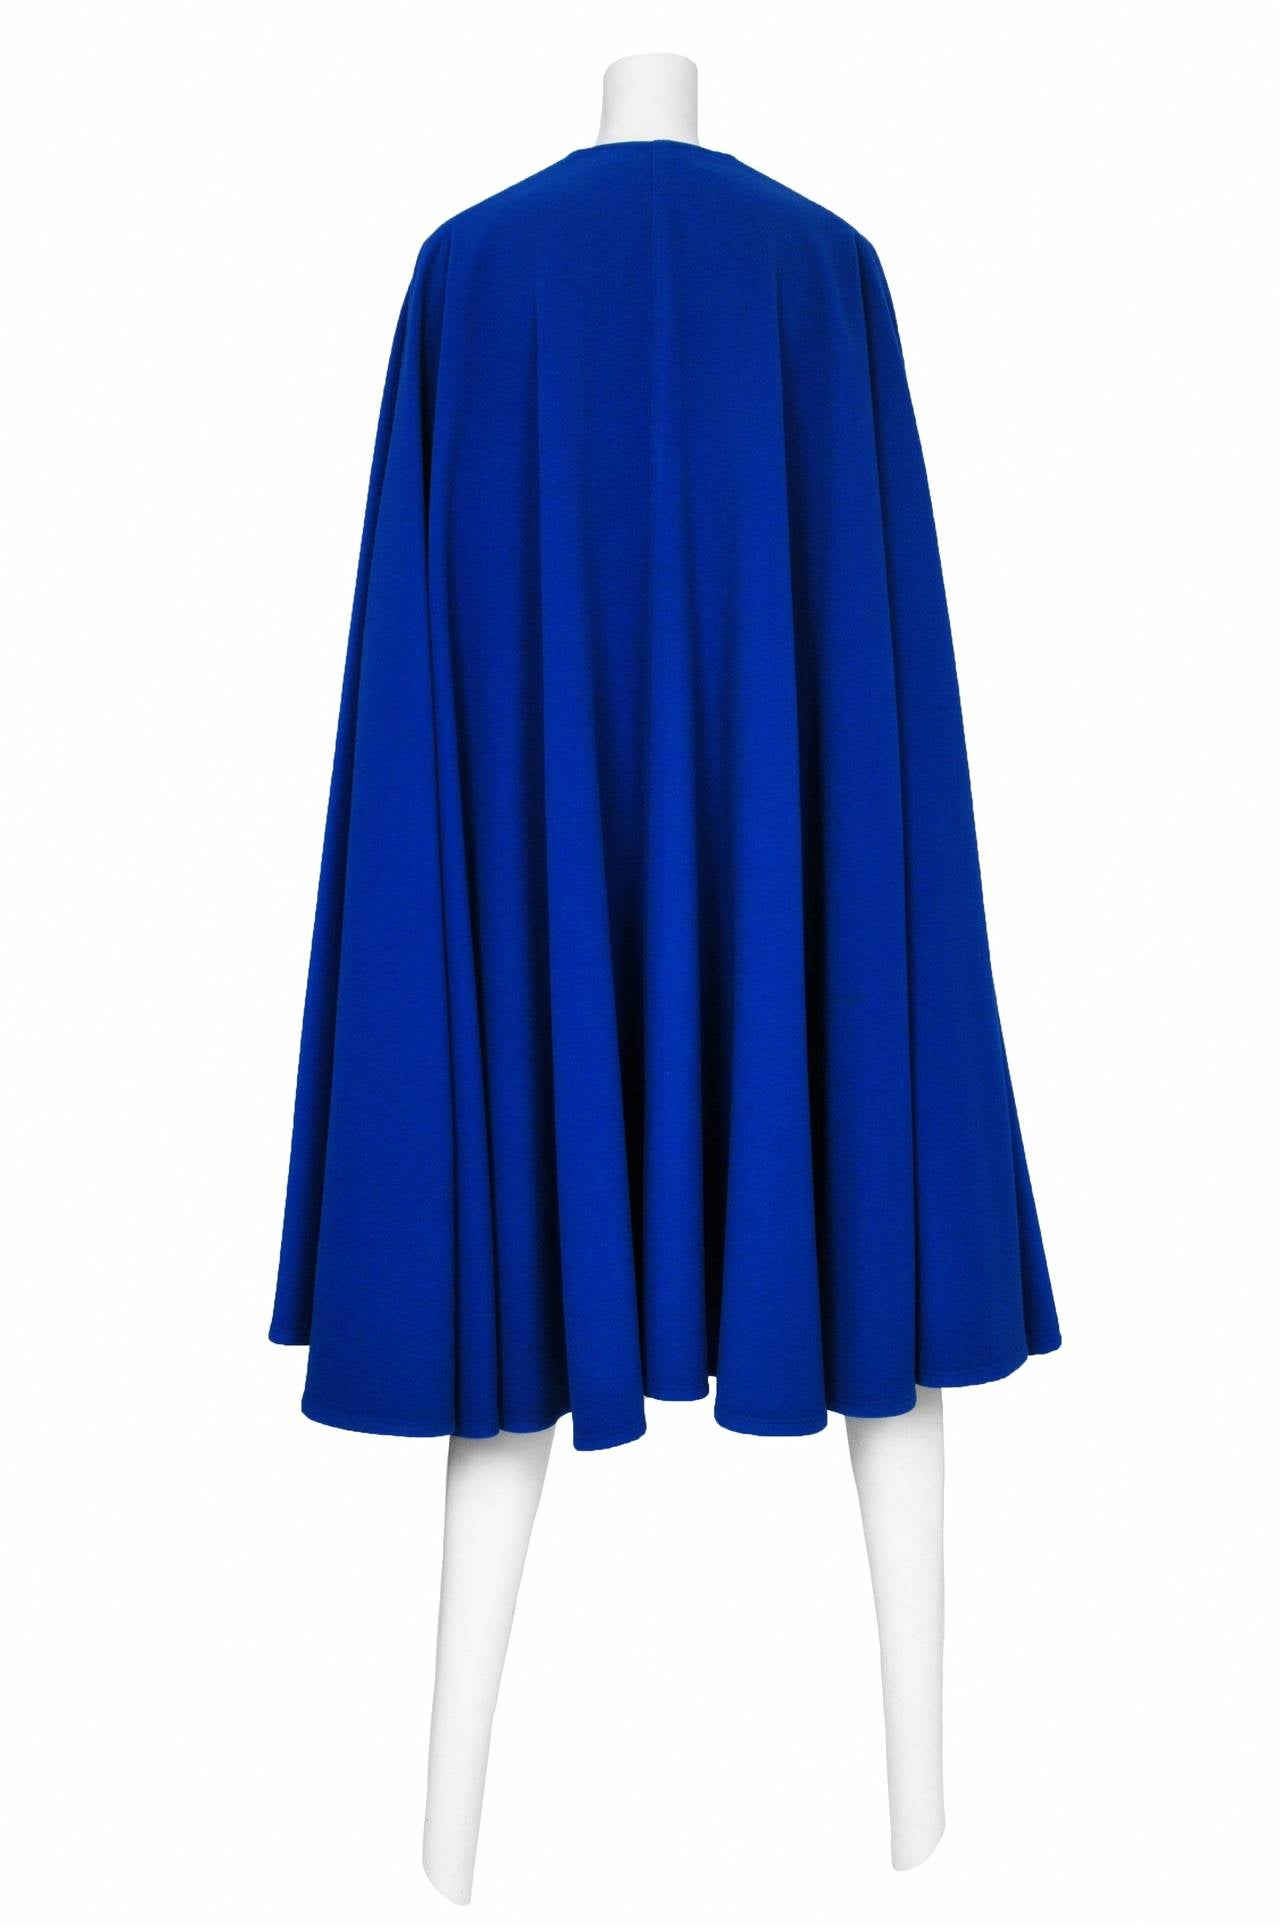 Yves Saint Laurent Blue Wool Cape 5